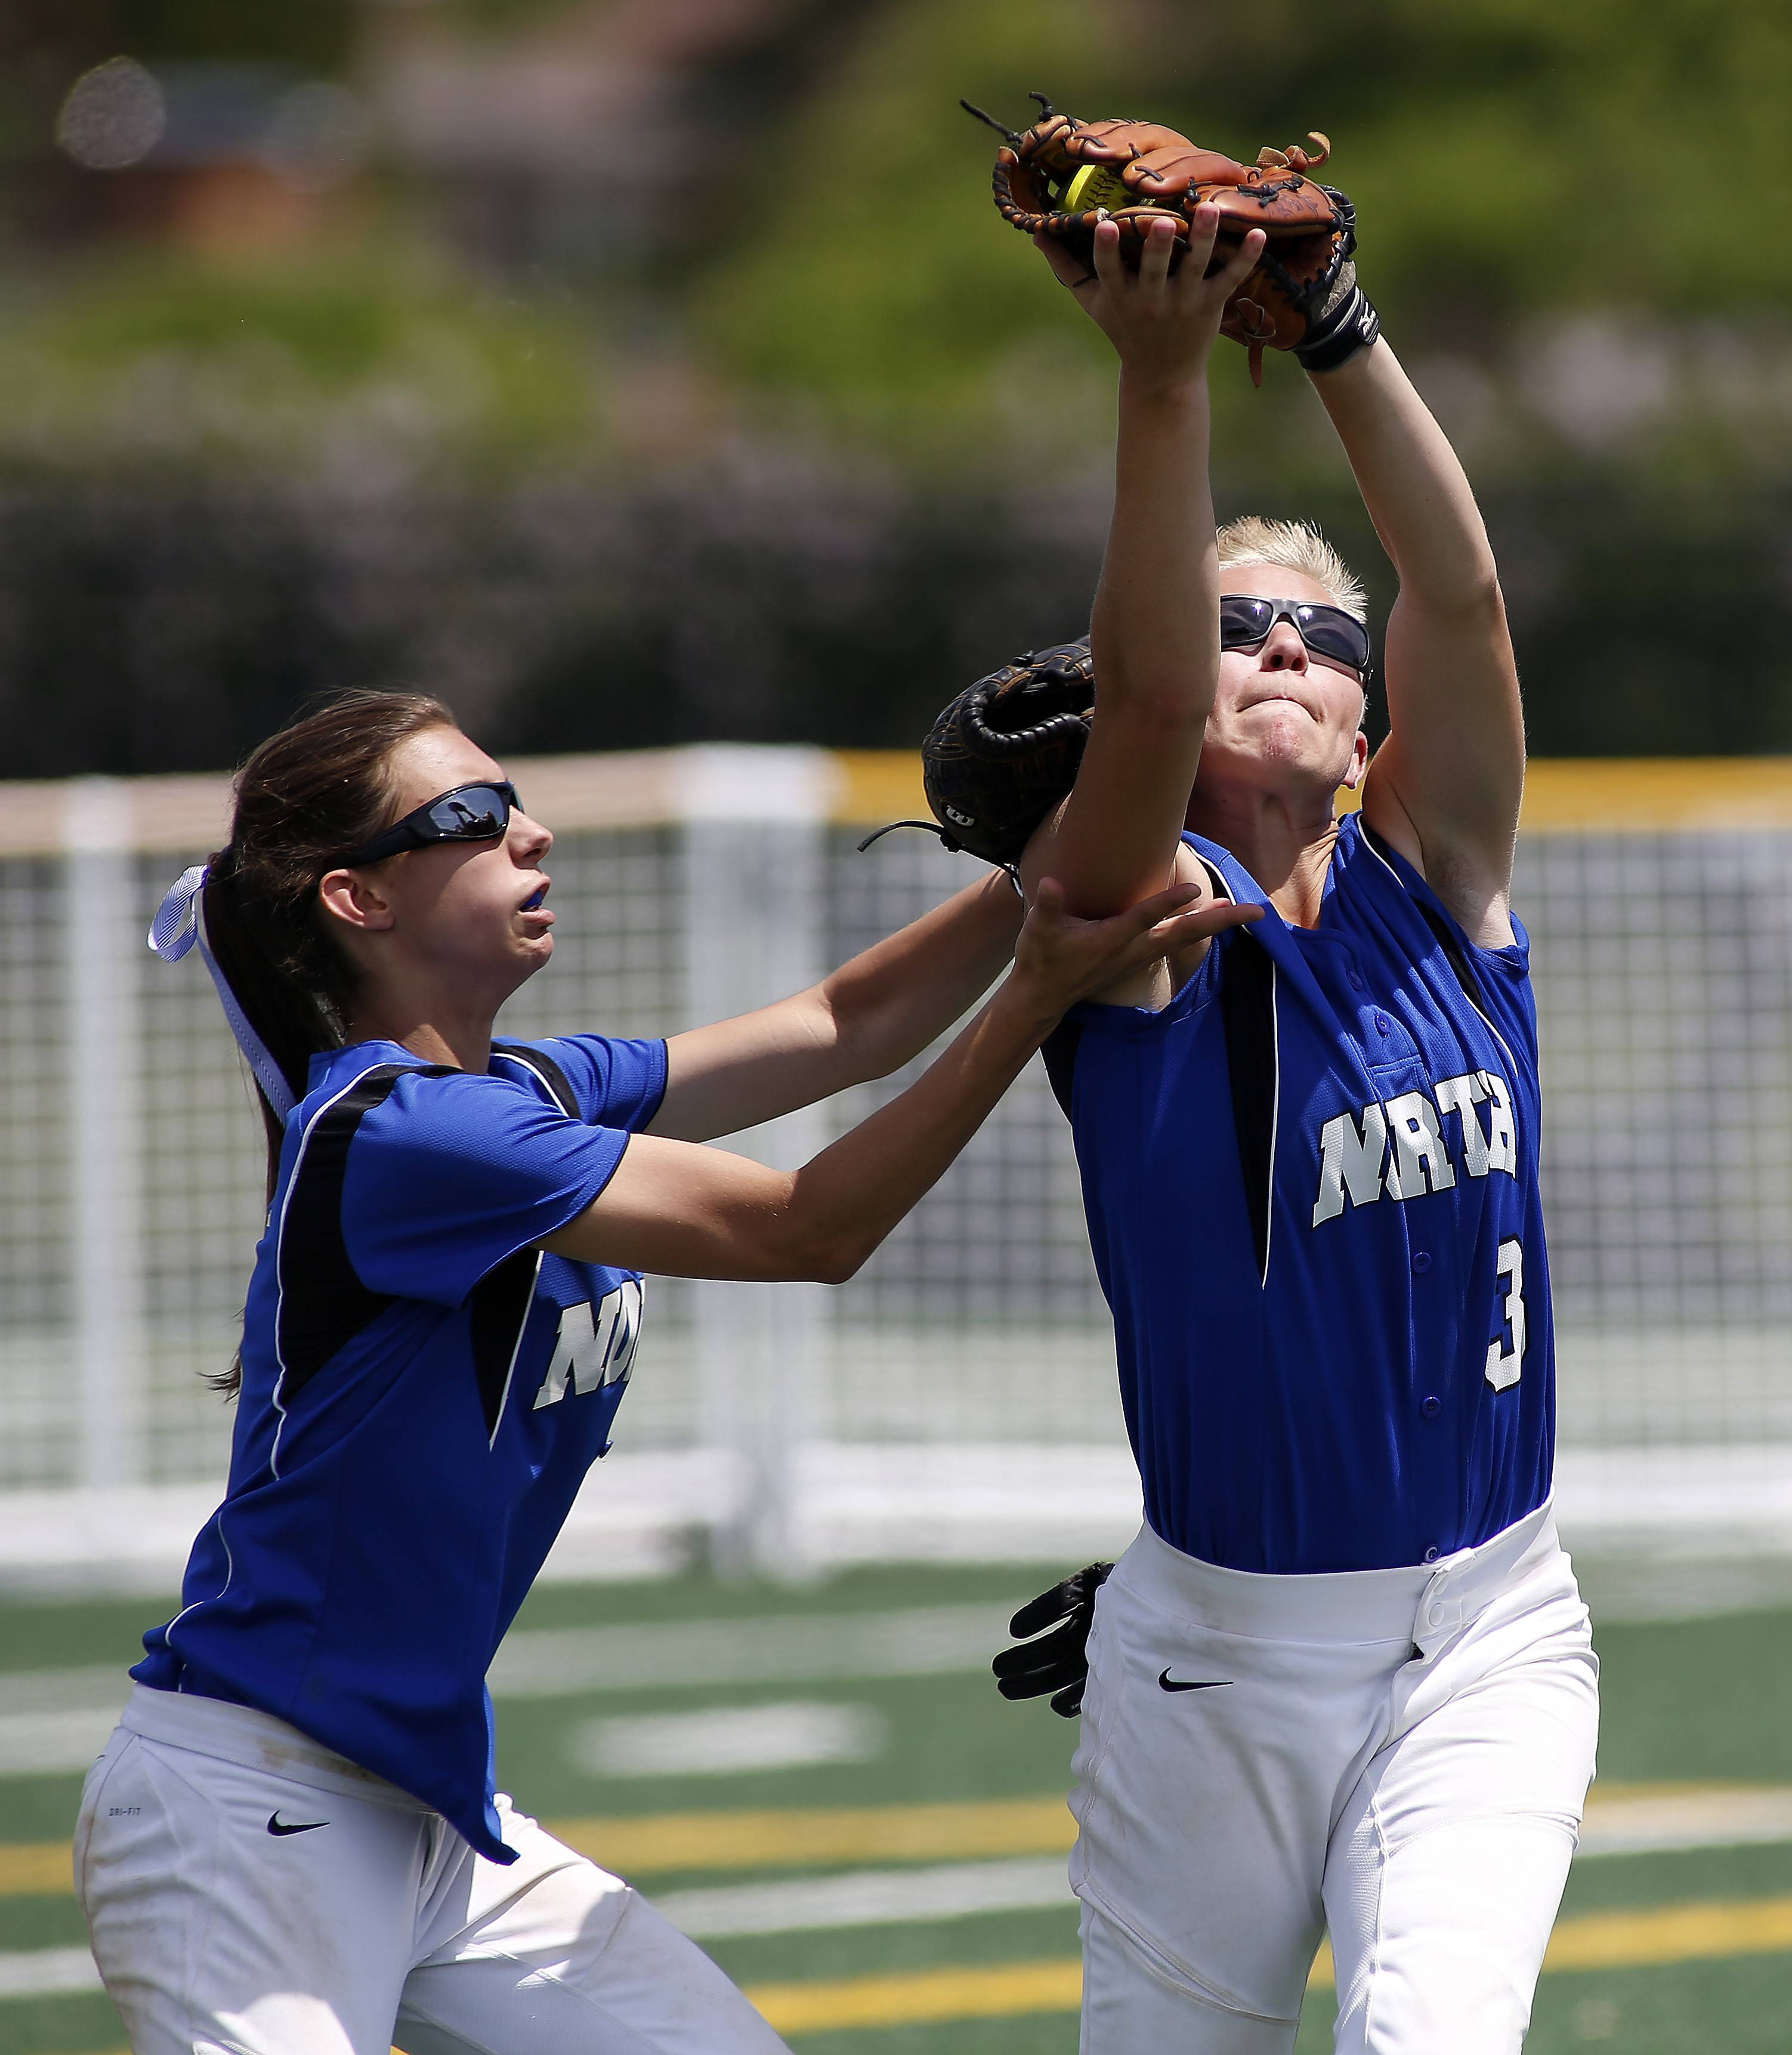 St. Charles North's Jordyn Wolfe, left, and Andrea Beal almost collide while reeling in a long shot to left field against Bartlett in the championship game of Class 4A Addison Trail regional.